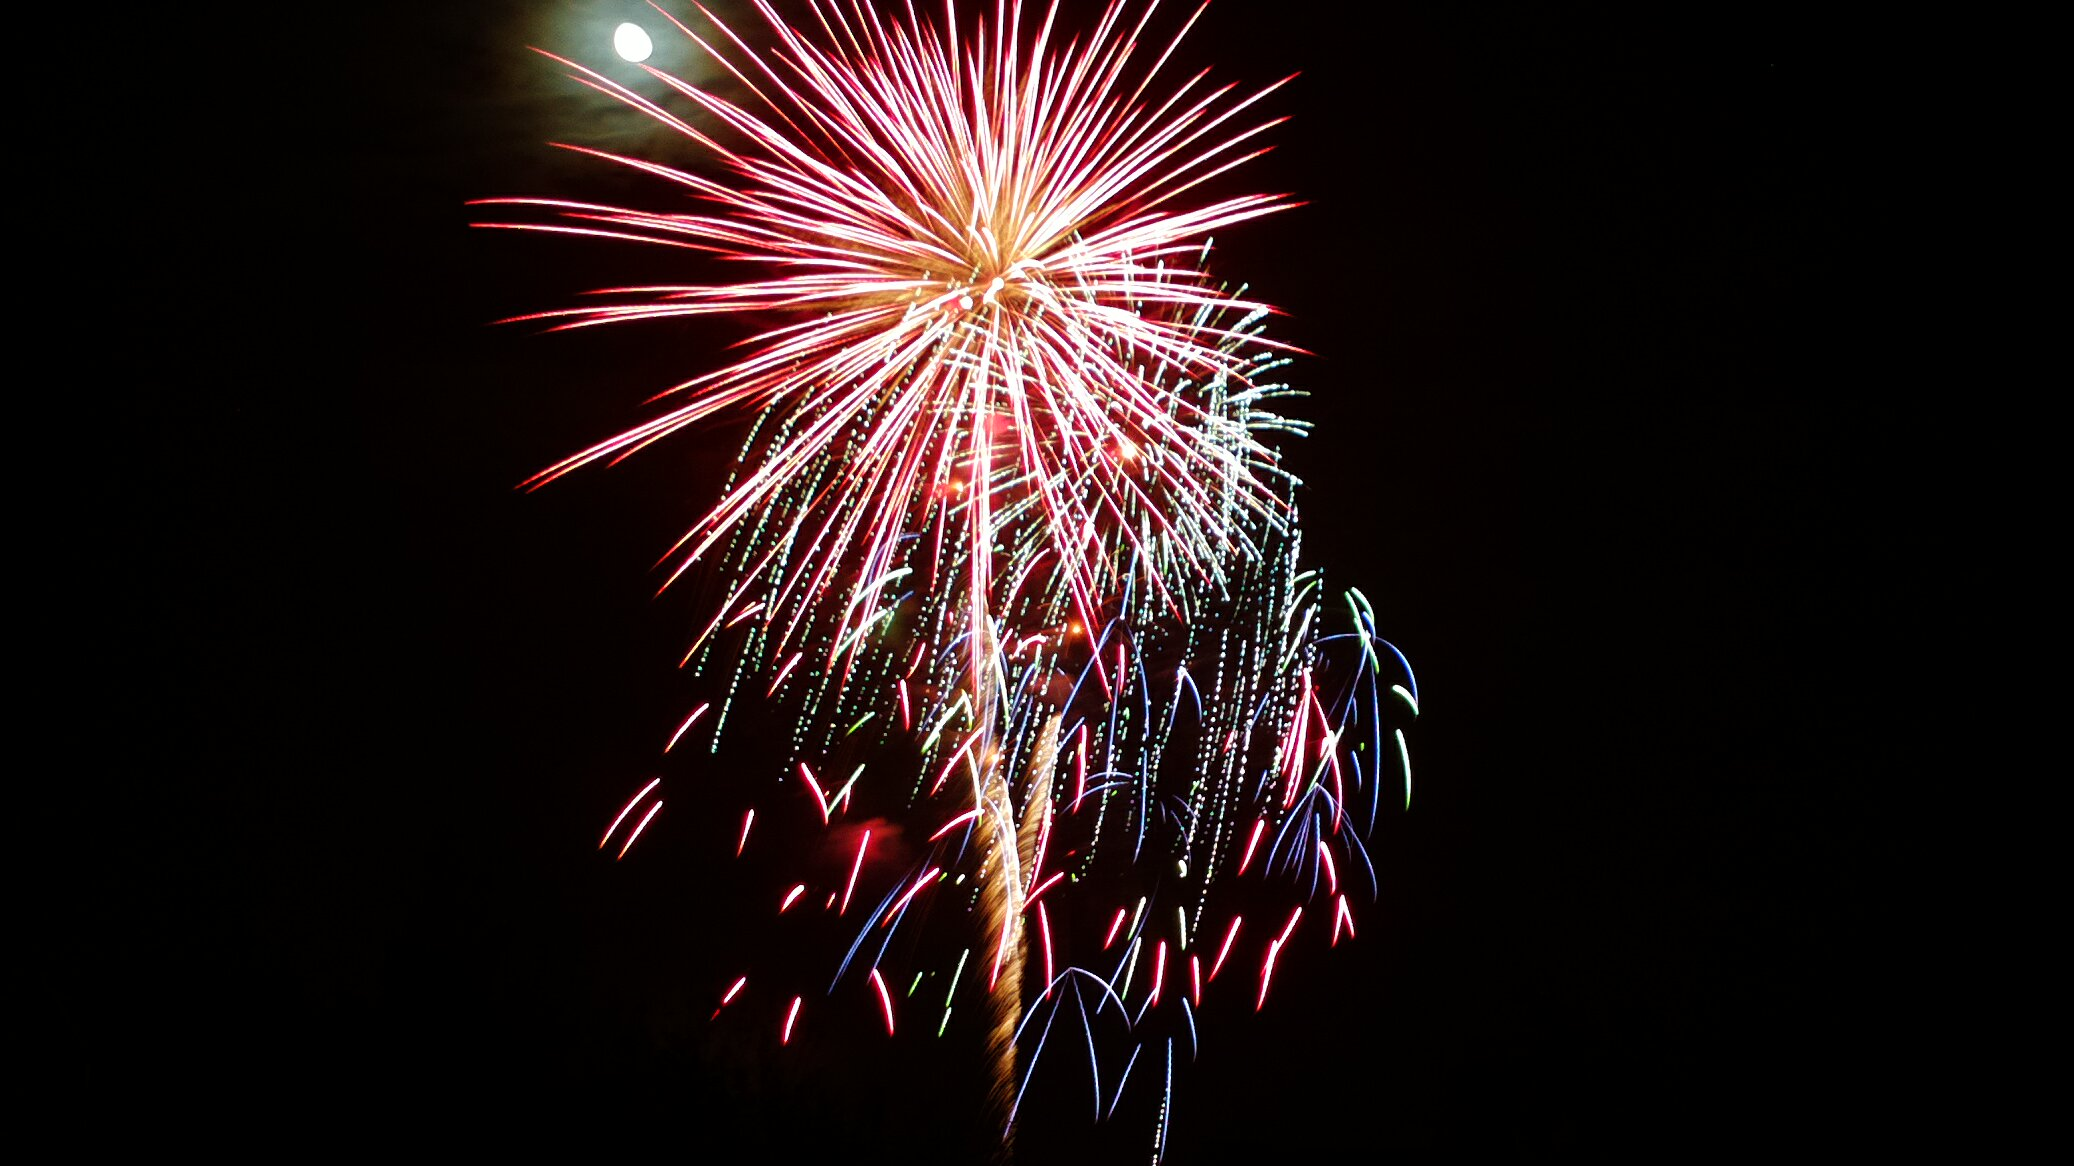 Full 808 3MP fireworks image from a mile away